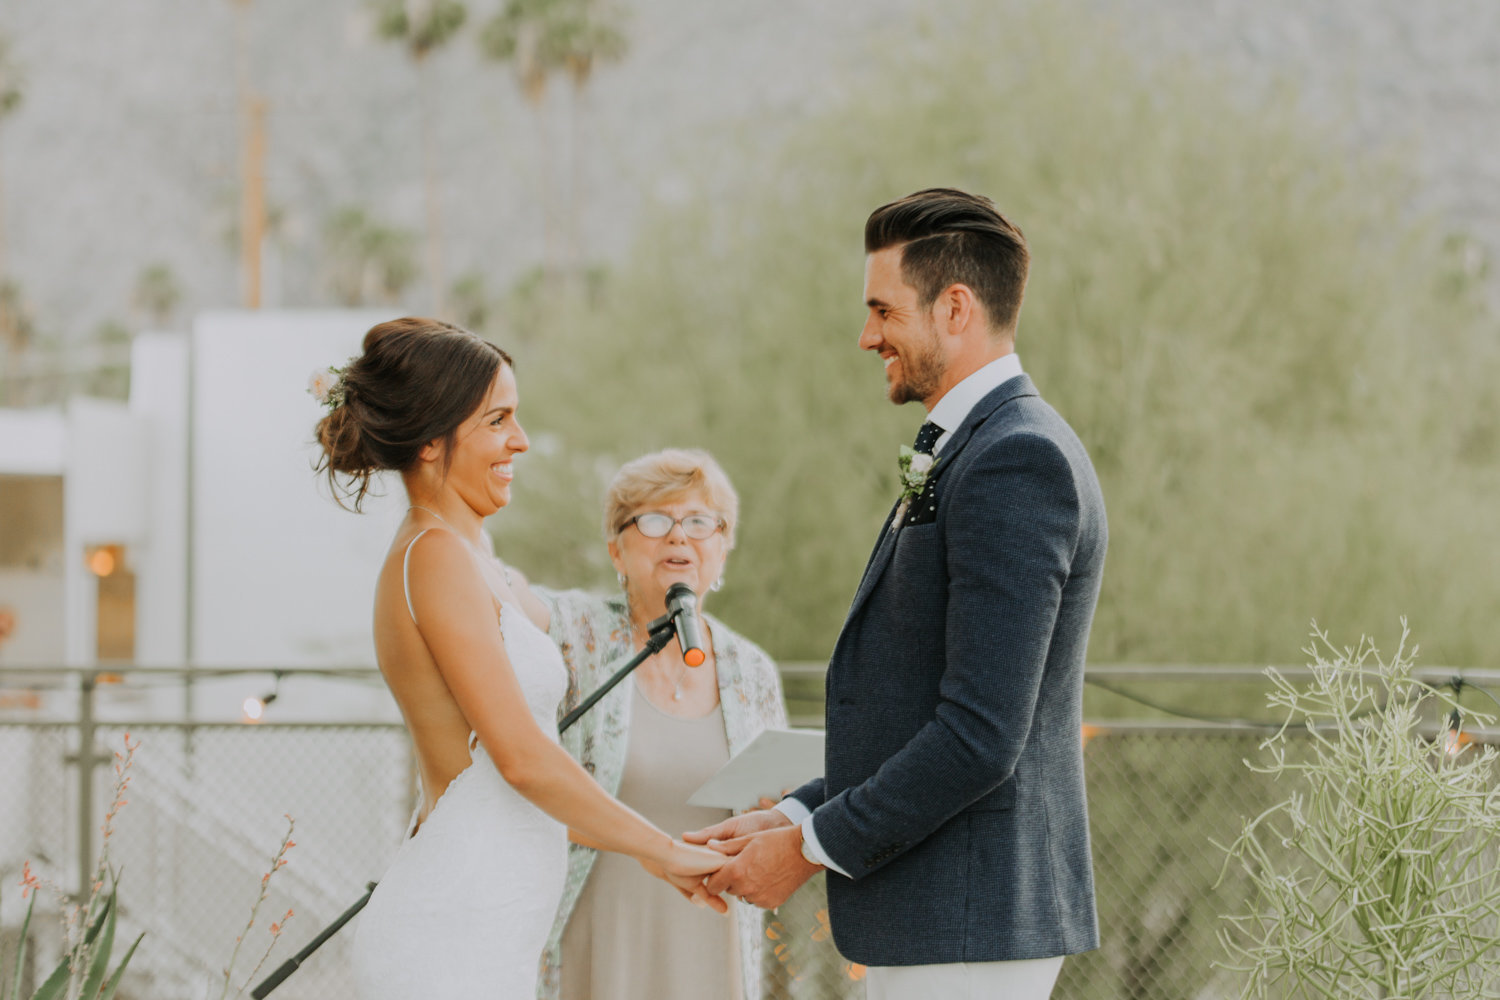 Brianna Broyles_Palm Springs Wedding Photographer_Ace Hotel Wedding_Ace Hotel Palm Springs-53